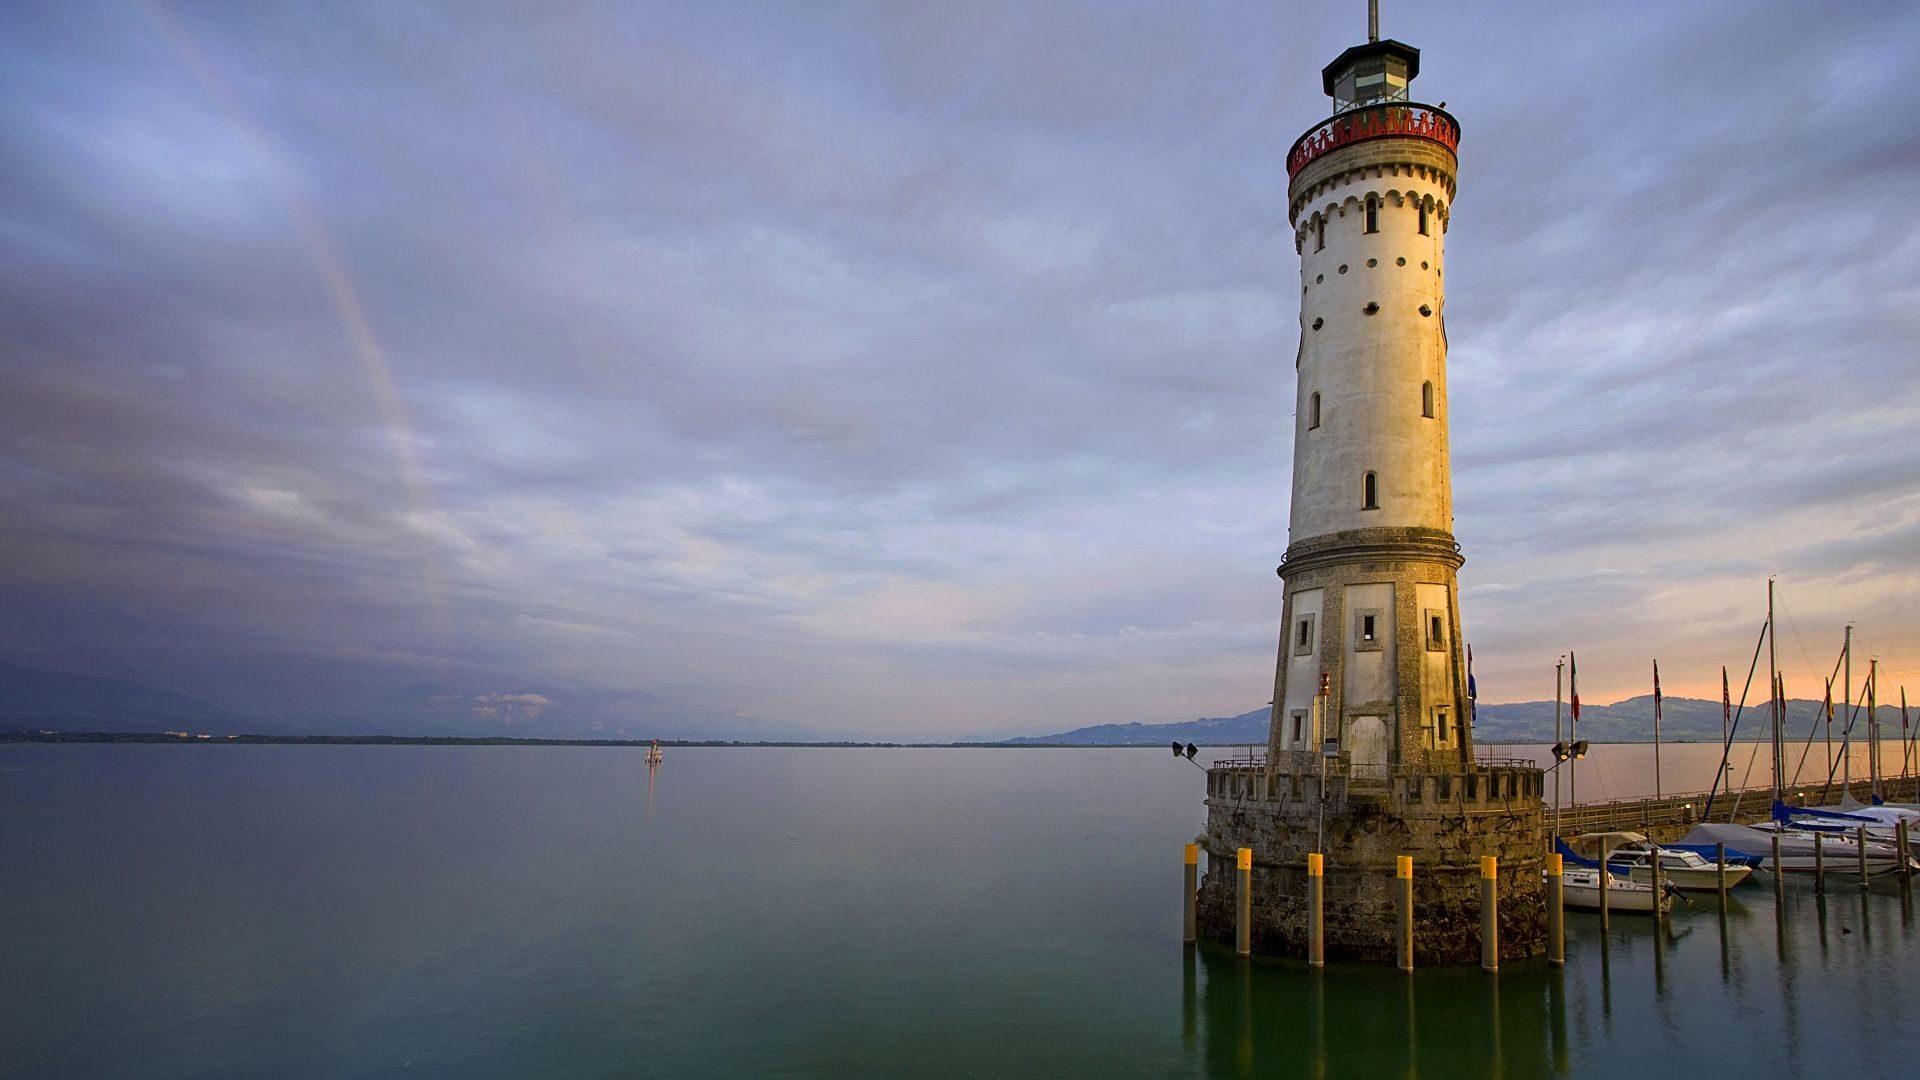 Lighthouse Pictures Free Wallpaper HD 1920x1080 #3871, Lighthouse ...